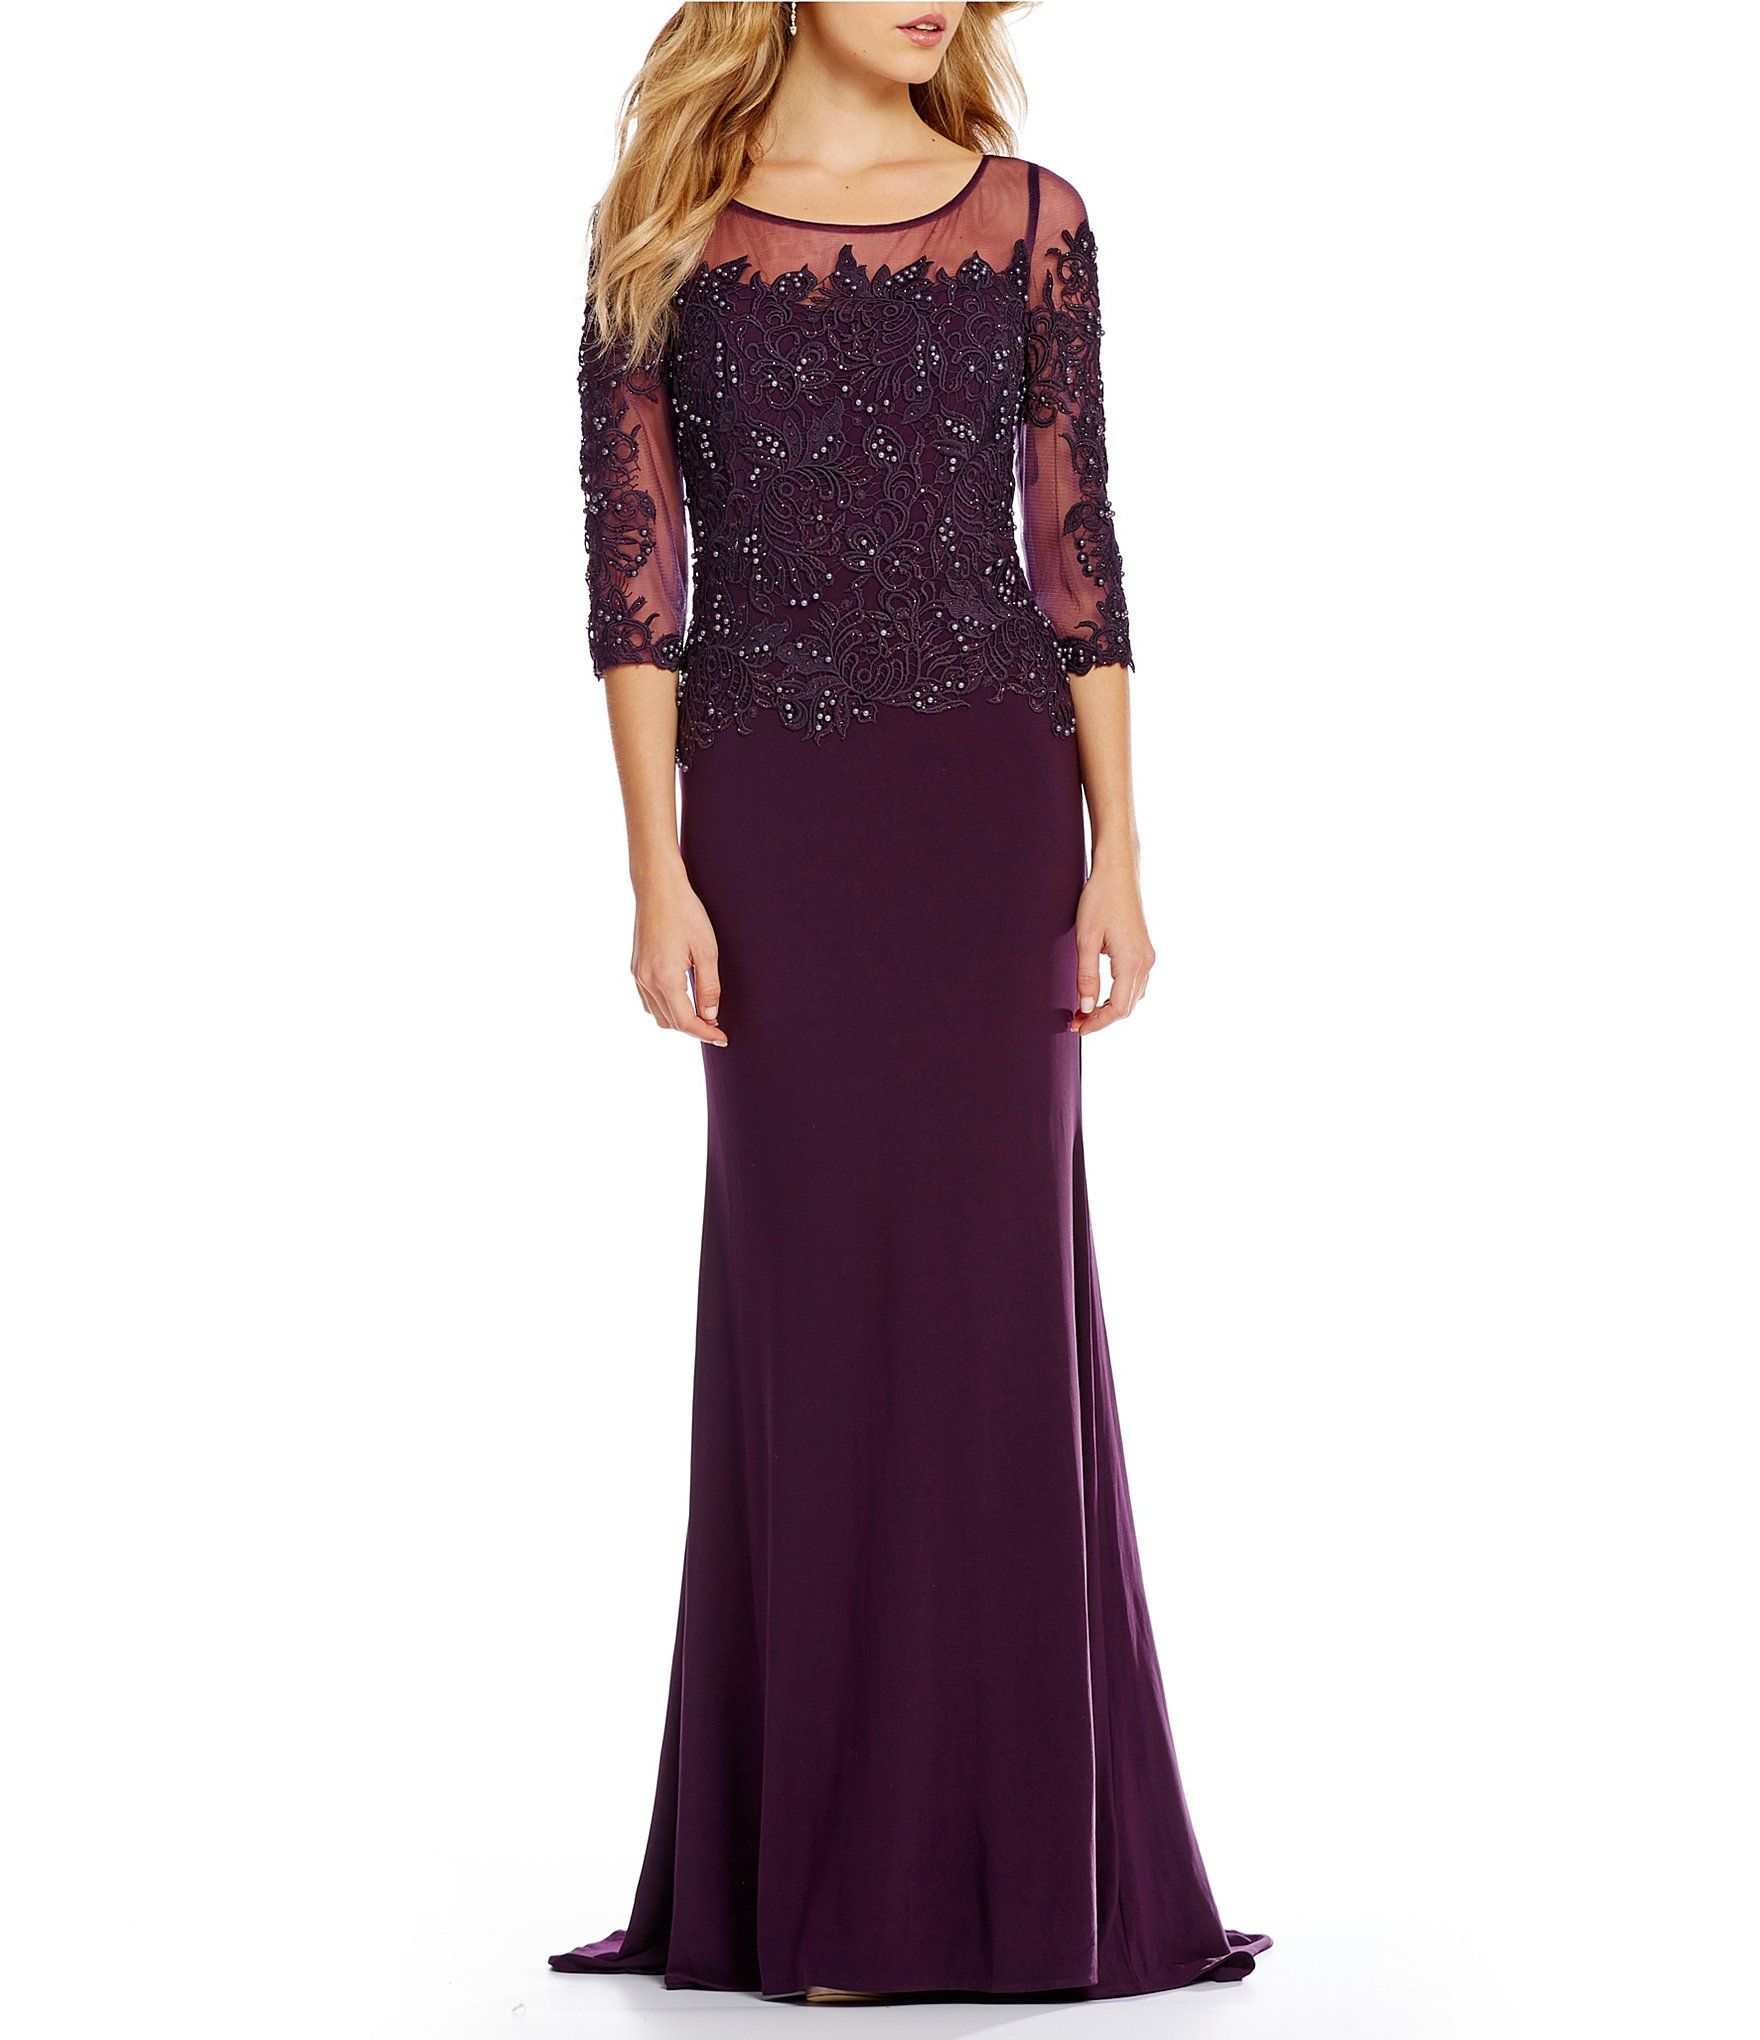 f0ed0221a6e Shop for MGNY Madeline Gardner New York Beaded Lace Jersey Gown at Dillards.com.  Visit Dillards.com to find clothing